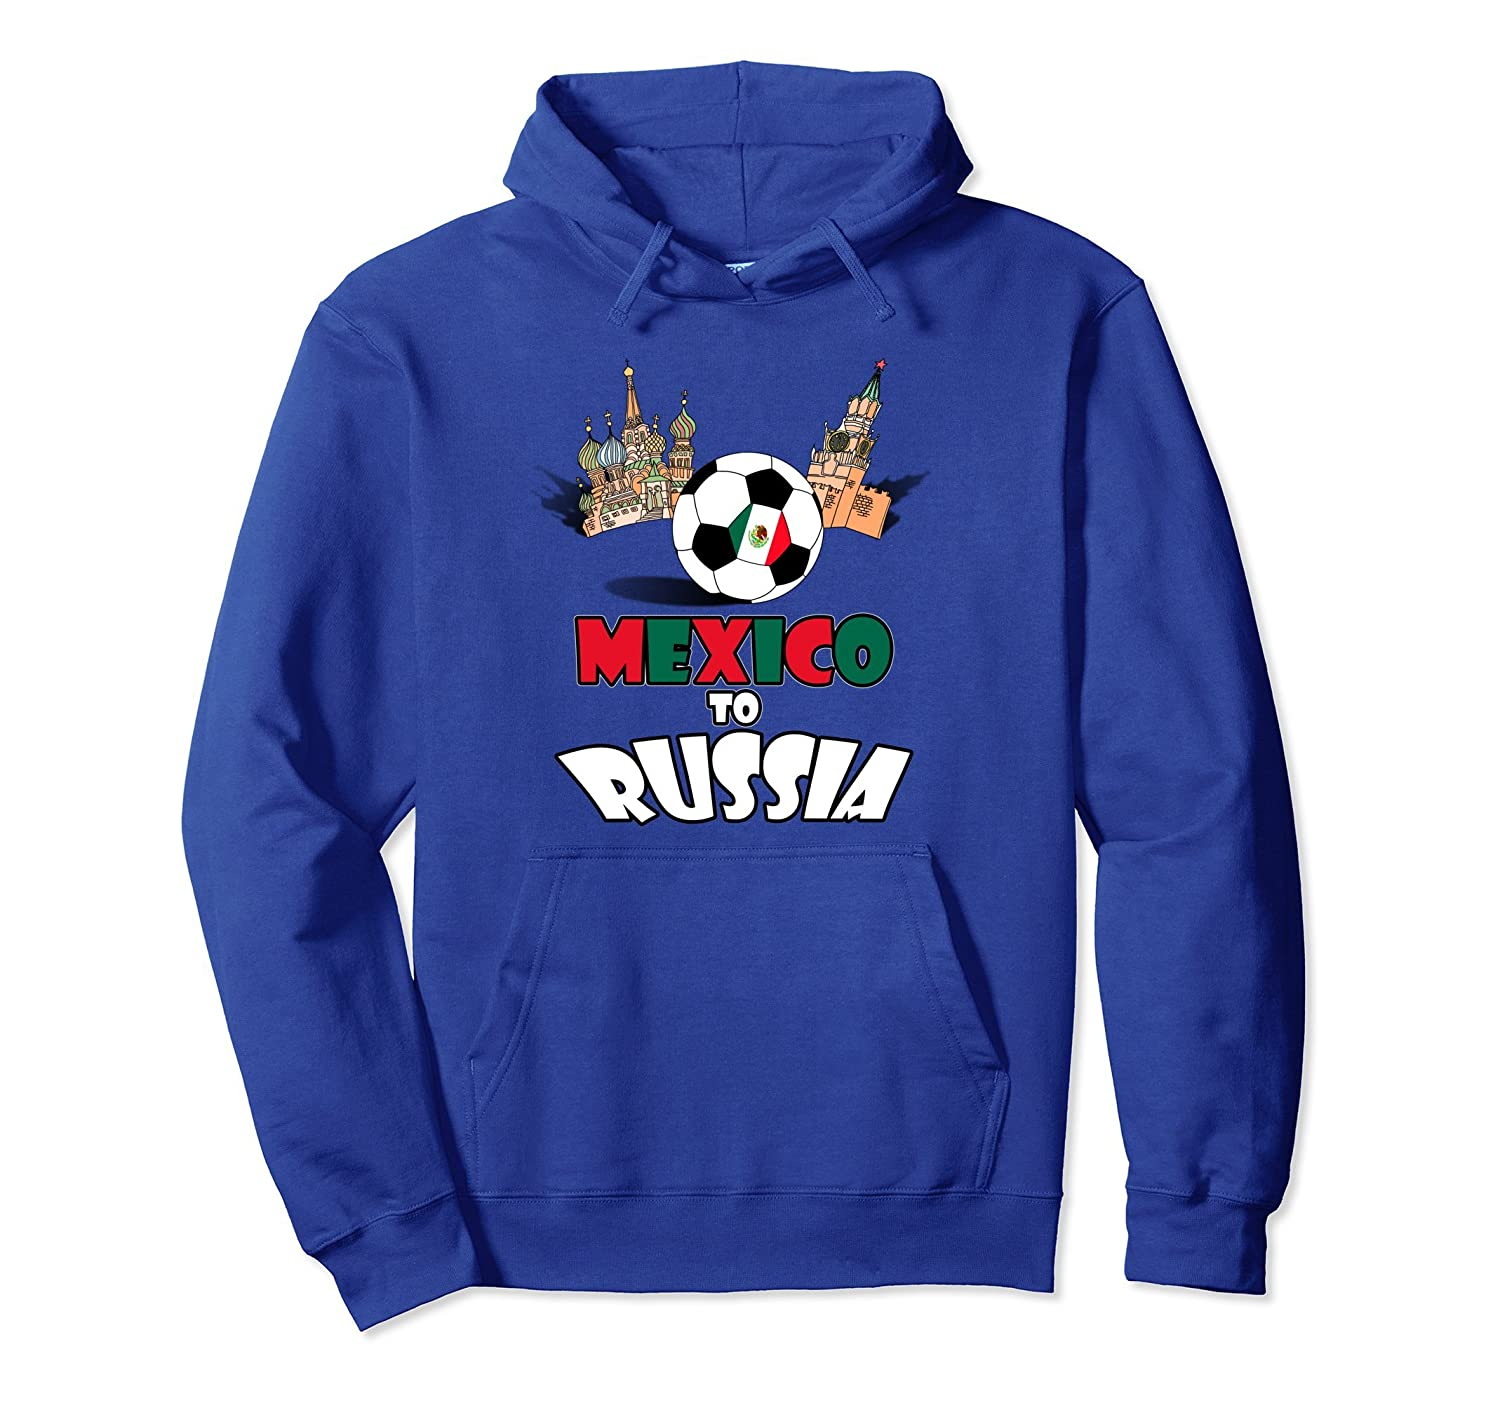 c8a0a6520 Amazon.com  Mexico National Soccer Team to Russia Pullover Hoodie  Clothing